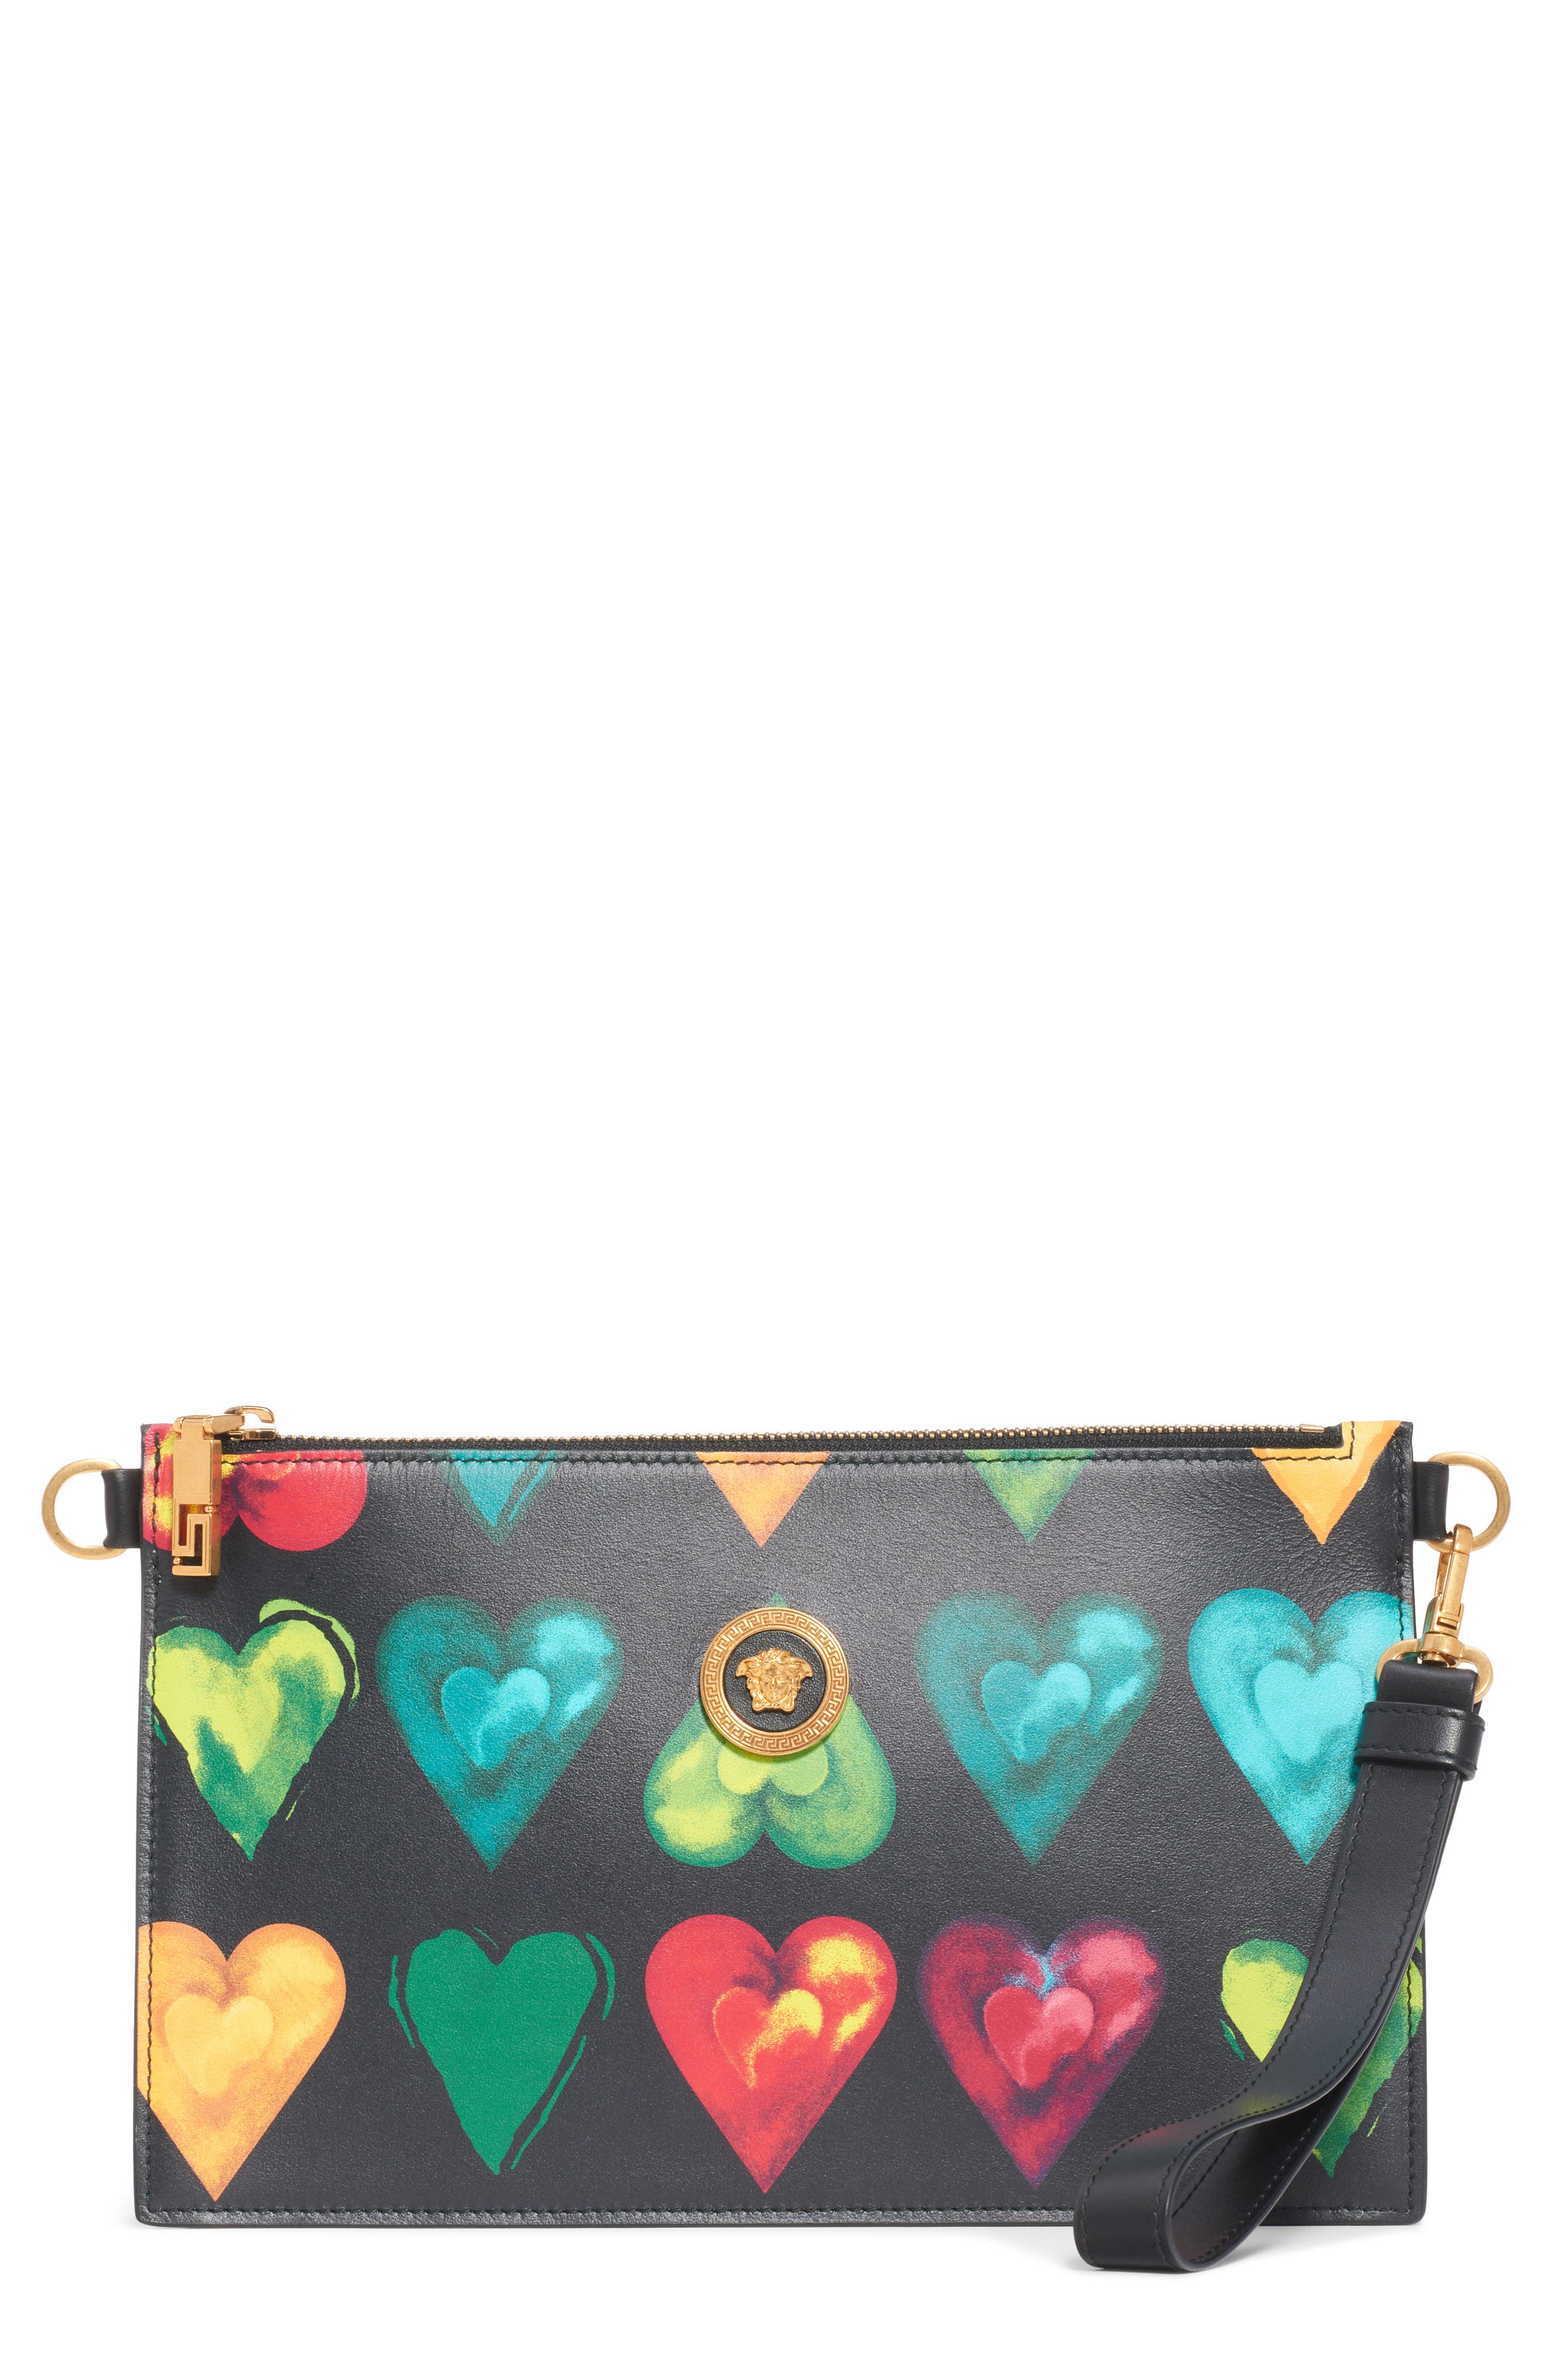 Versace Clutch First Line Rebellious Hearts Leather Clutch